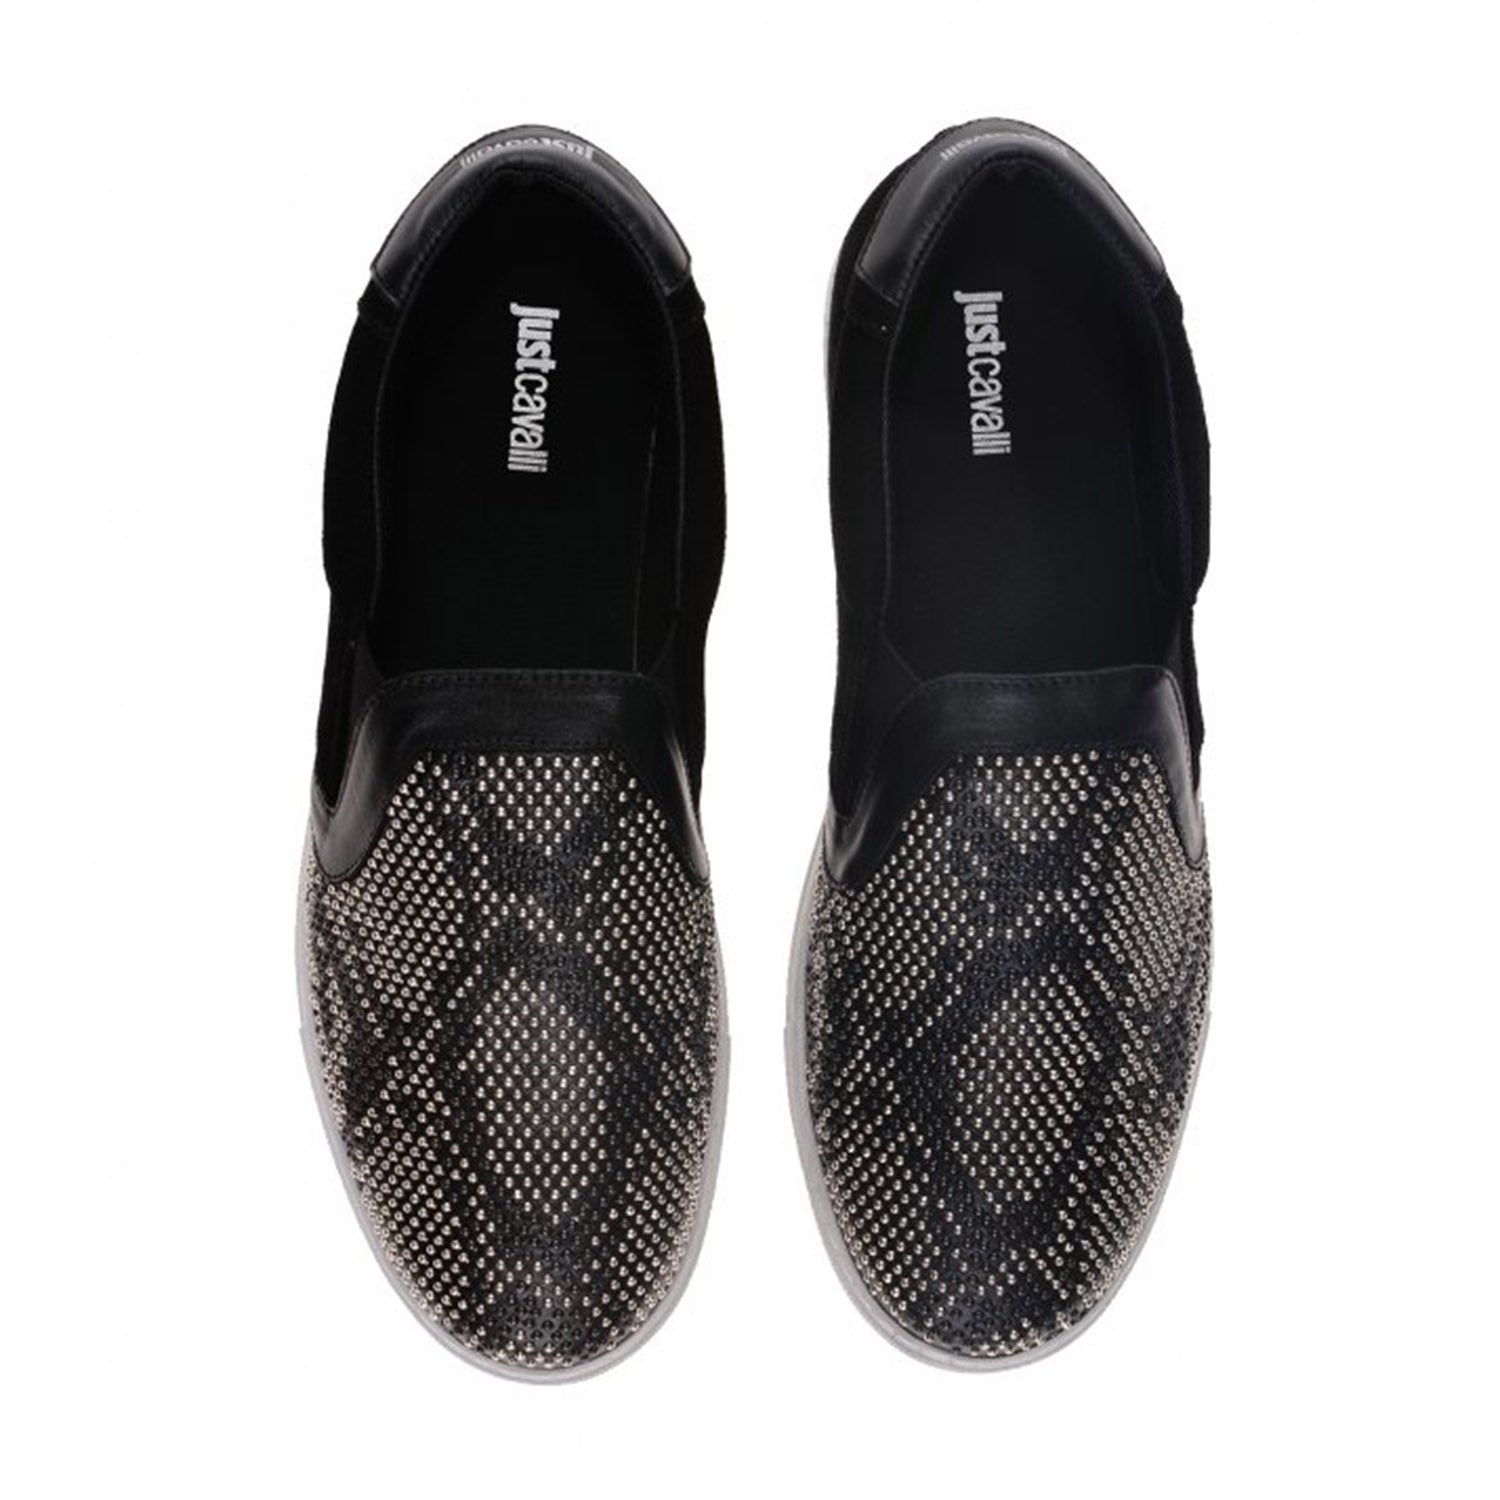 Just Cavalli Stone Detailing Slip on Trainer